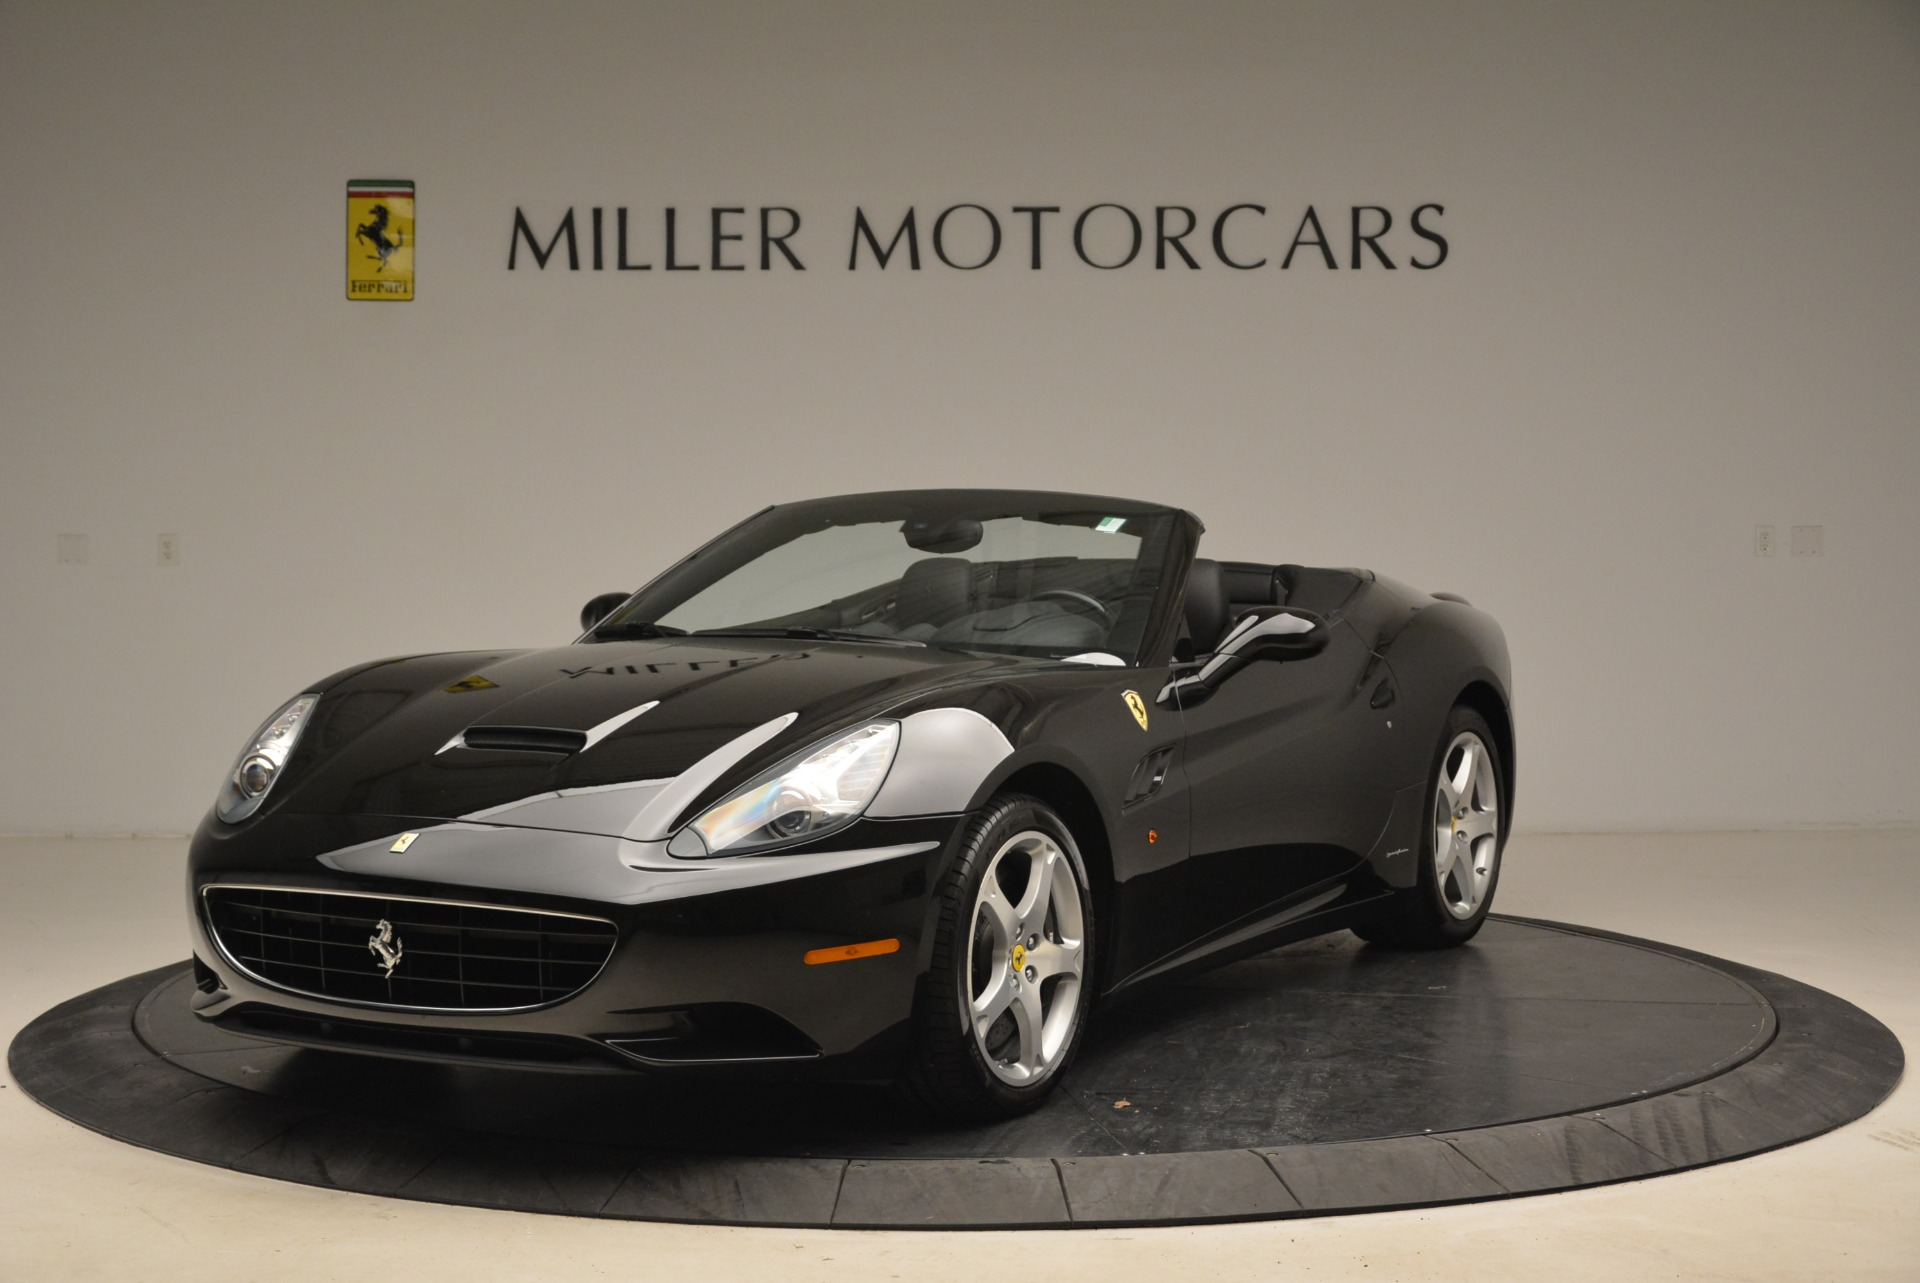 Used 2009 Ferrari California for sale Sold at Bugatti of Greenwich in Greenwich CT 06830 1